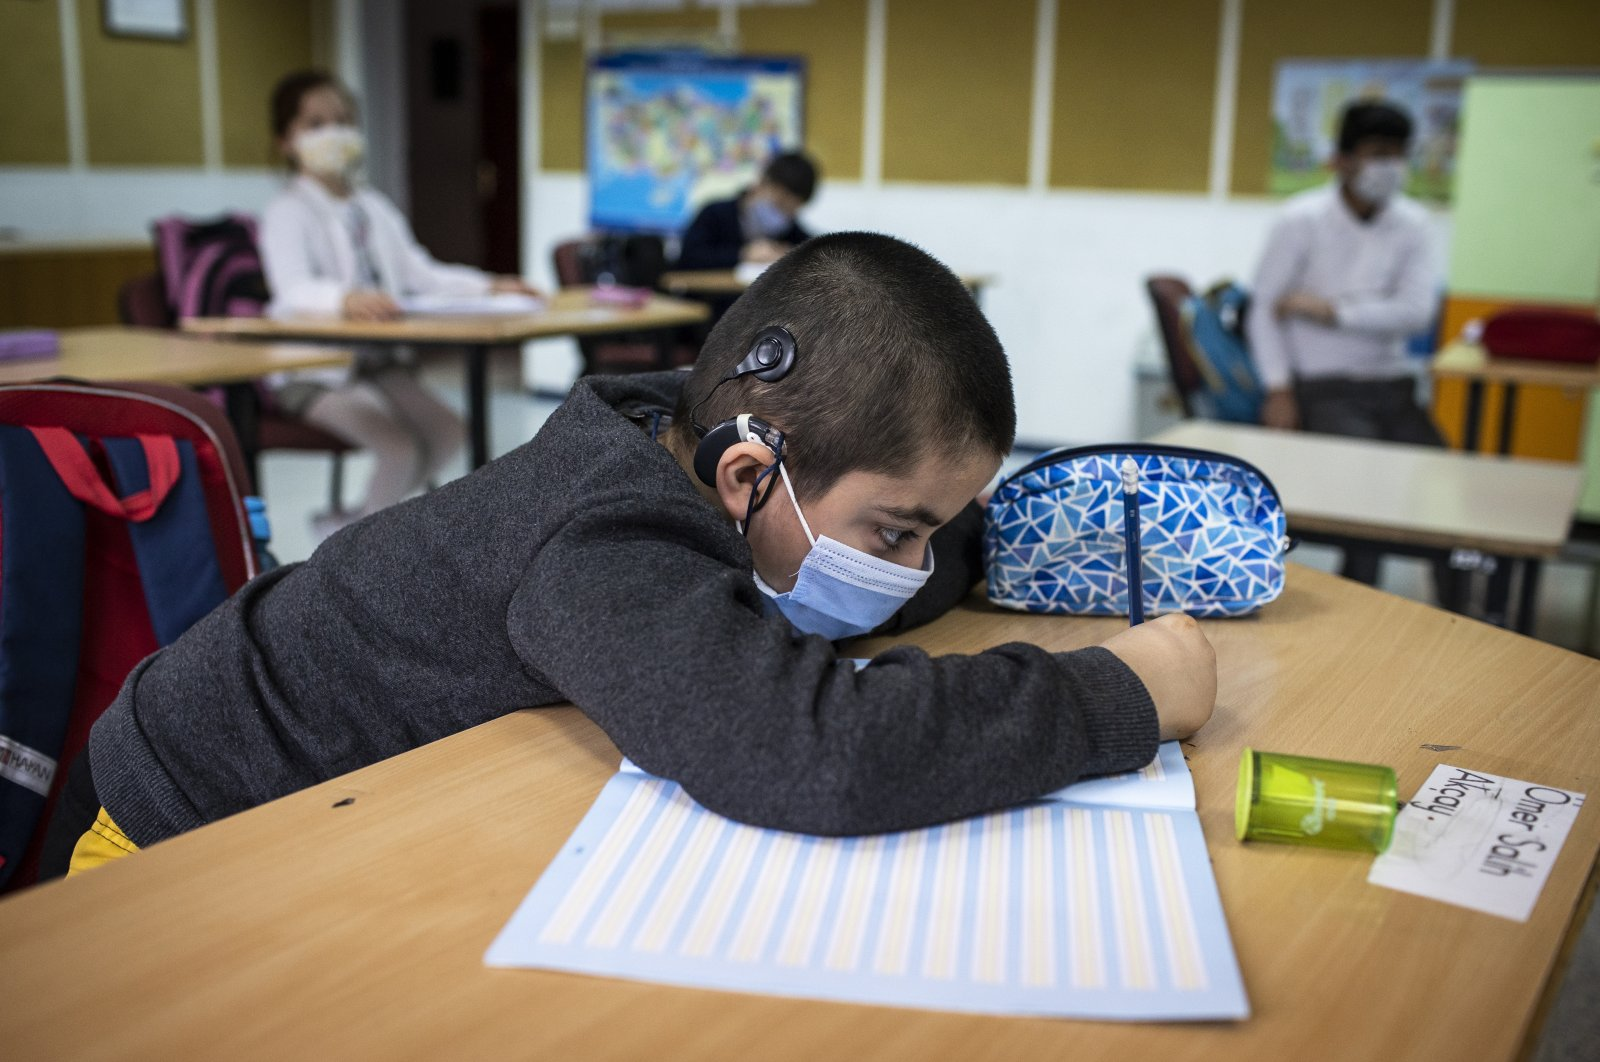 A student attends a class at Kemal Yurtbilir Middle School for the Hearing Impaired in the capital Ankara, Turkey, March 23, 2021. (AA PHOTO)